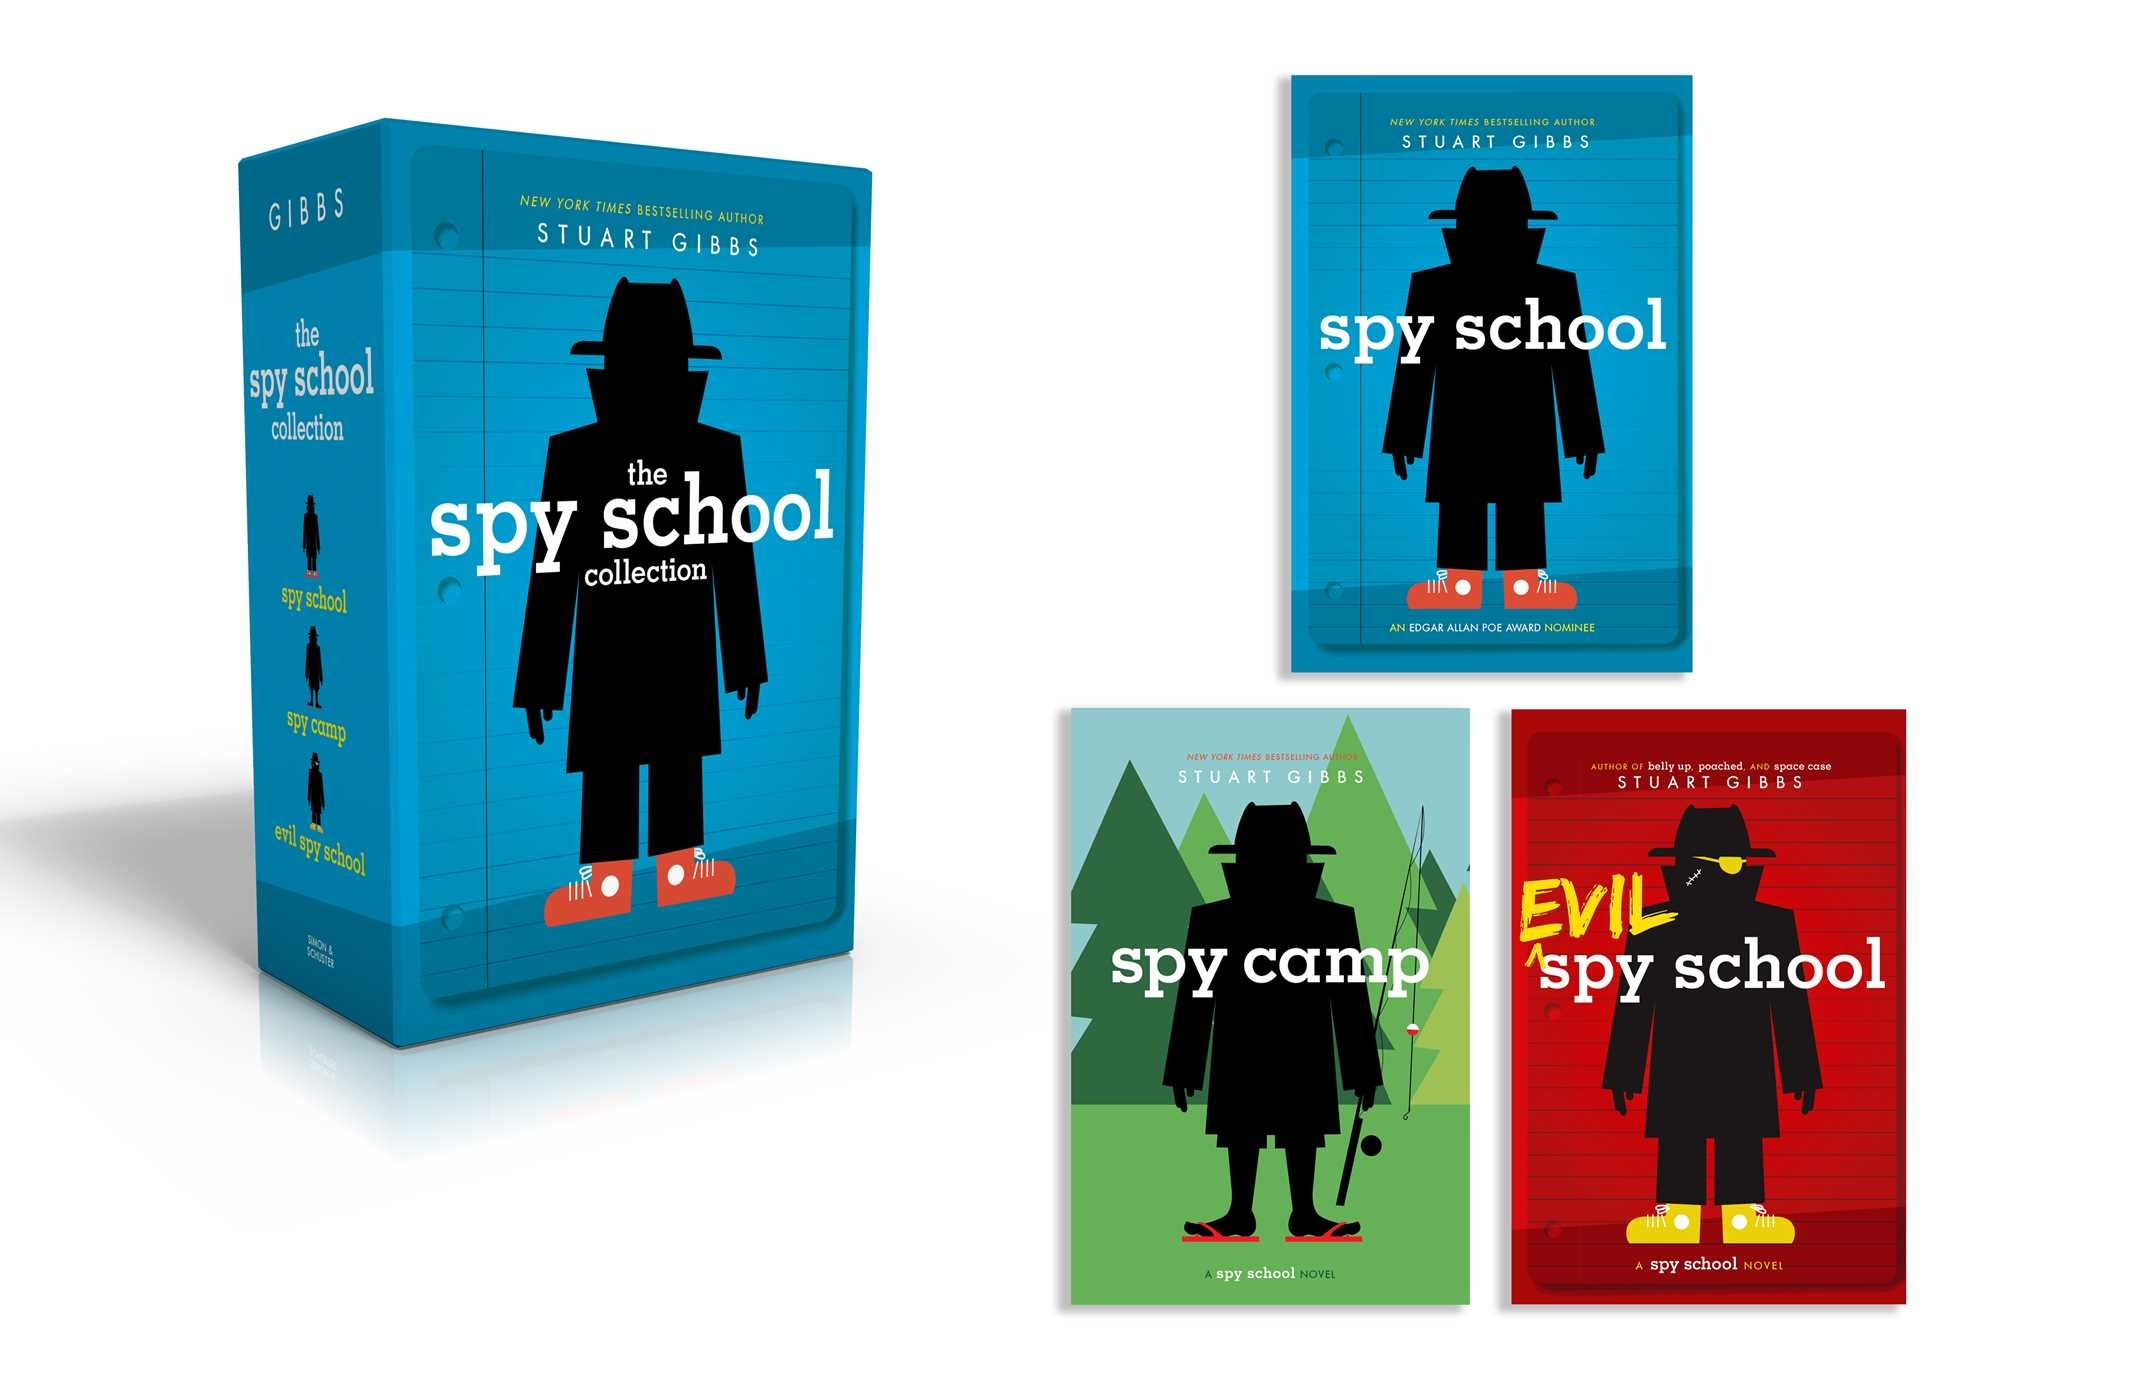 The spy school collection 9781481471527.in01